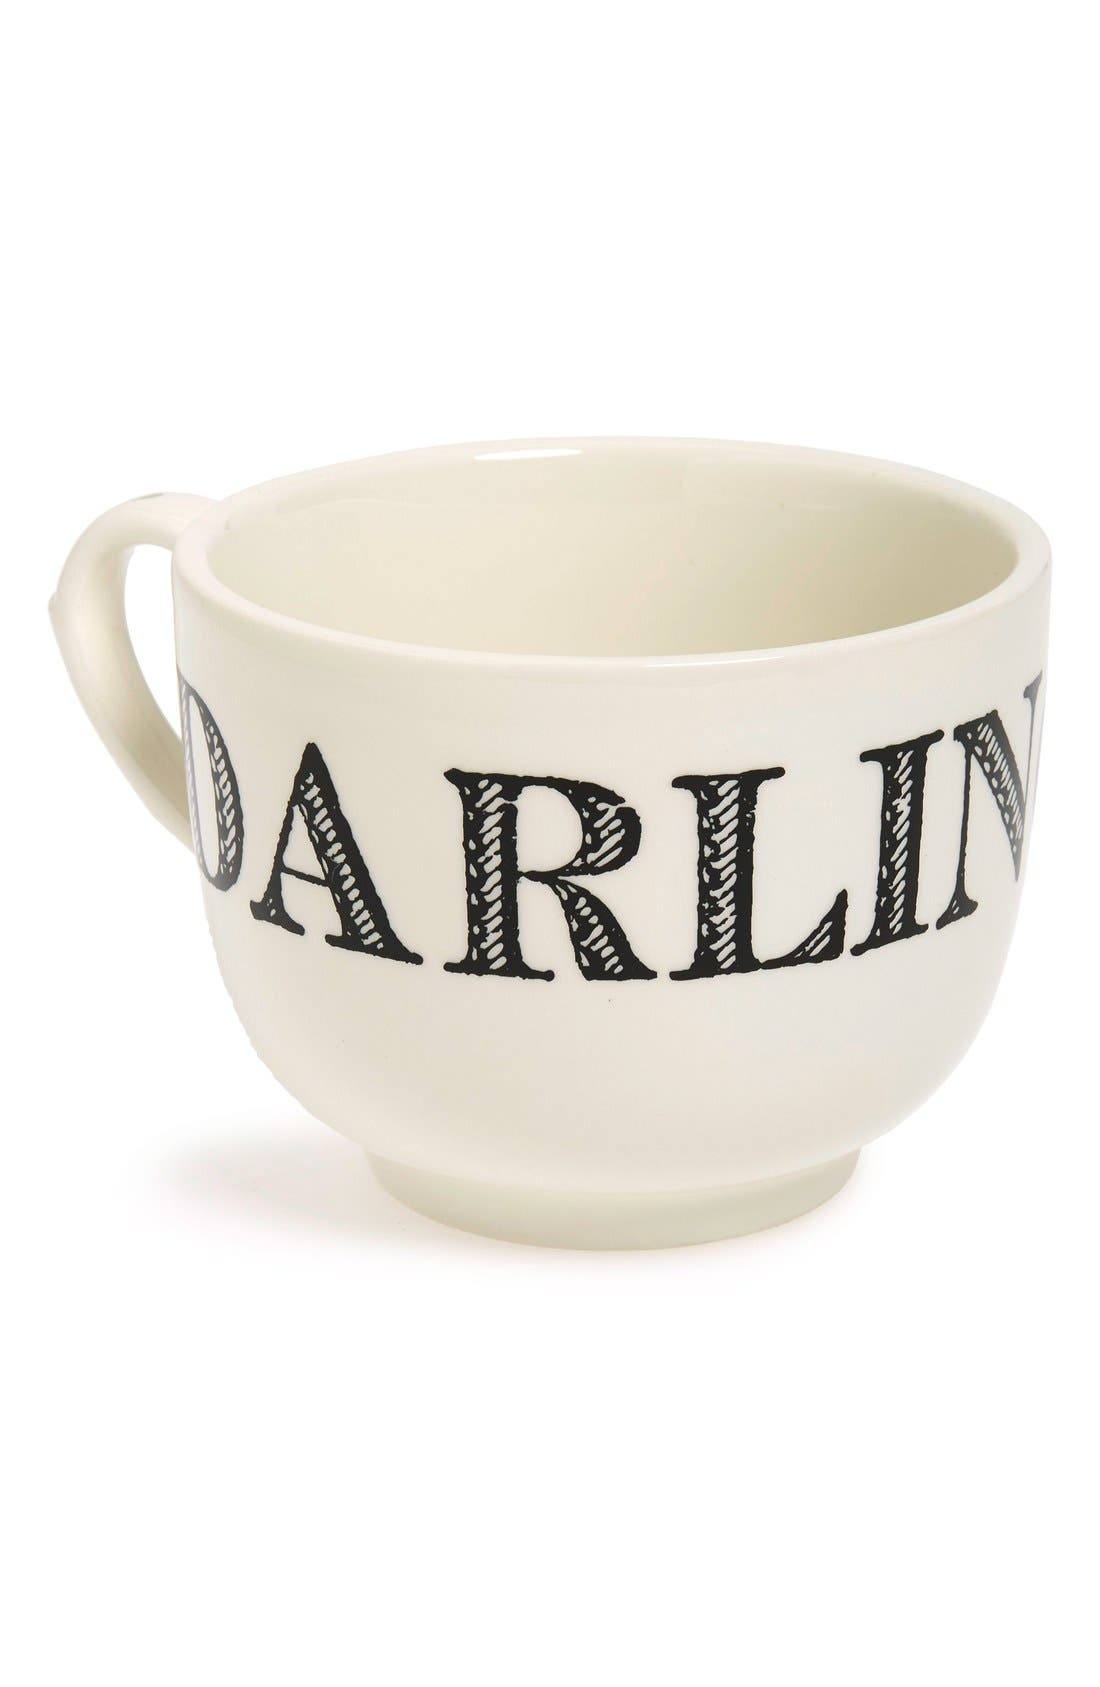 'Grand Cup - Darling' Porcelain Coffee Mug,                             Main thumbnail 1, color,                             TRUE BLACK/ MOSS